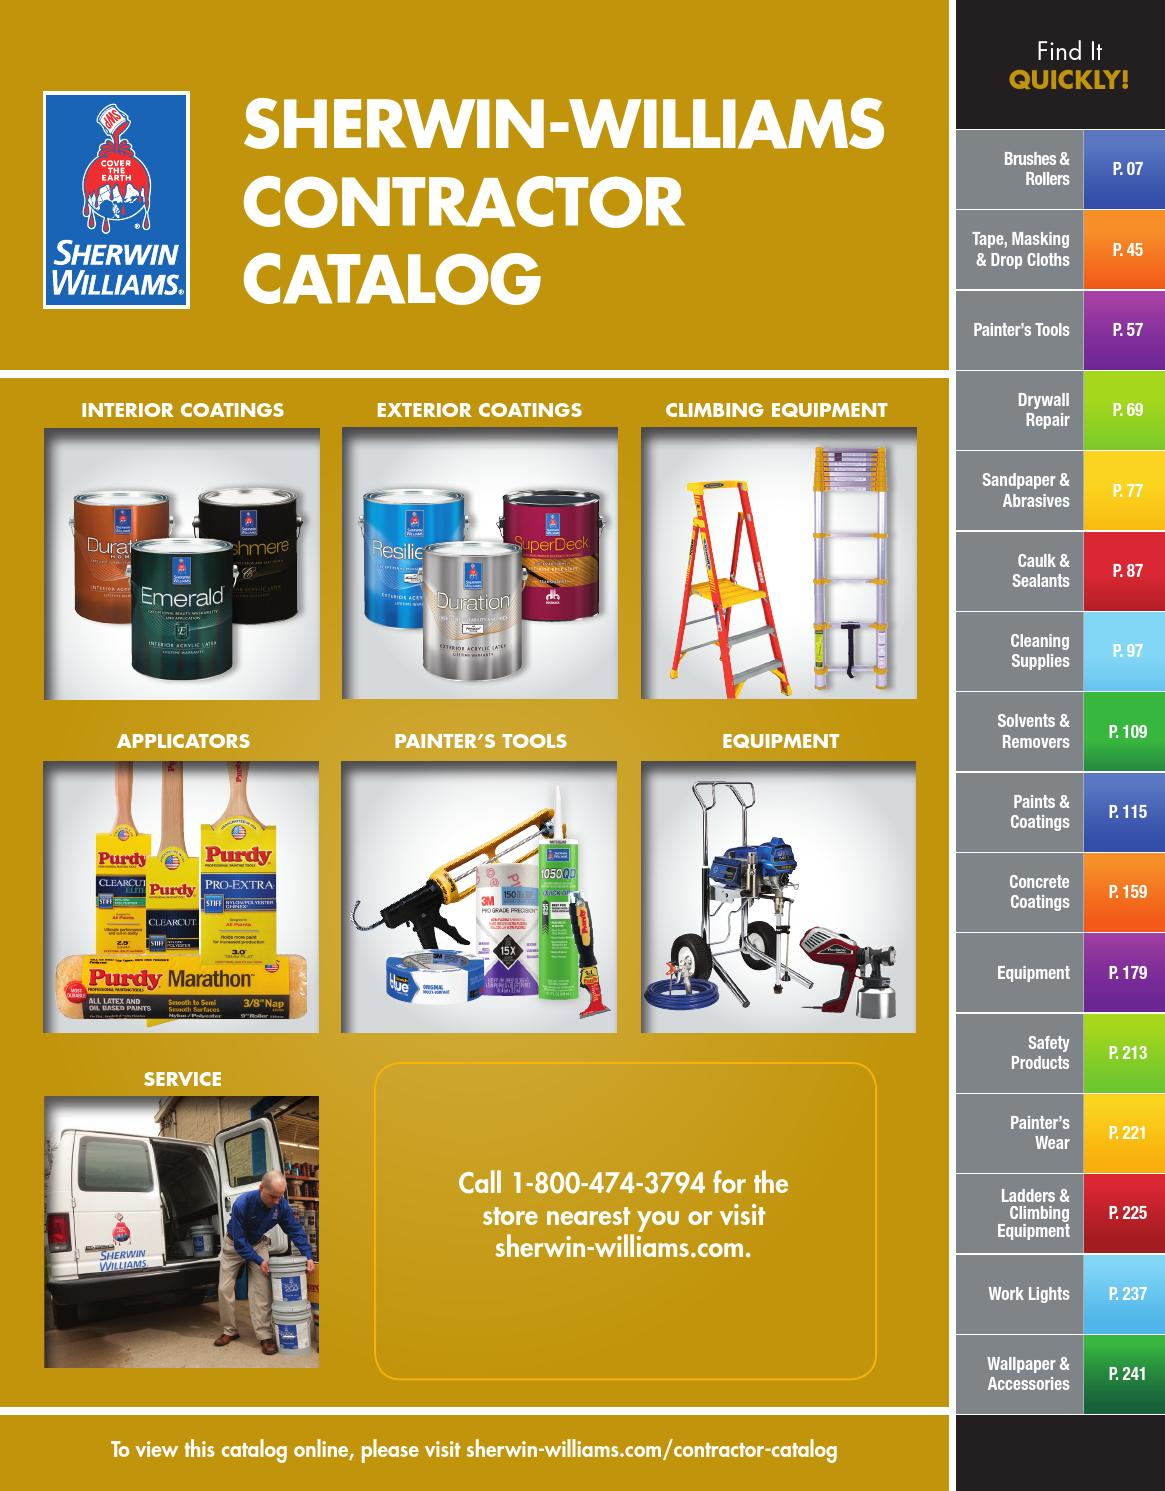 Sherwin-Williams Contractor Catalog by Sherwin-Williams - issuu